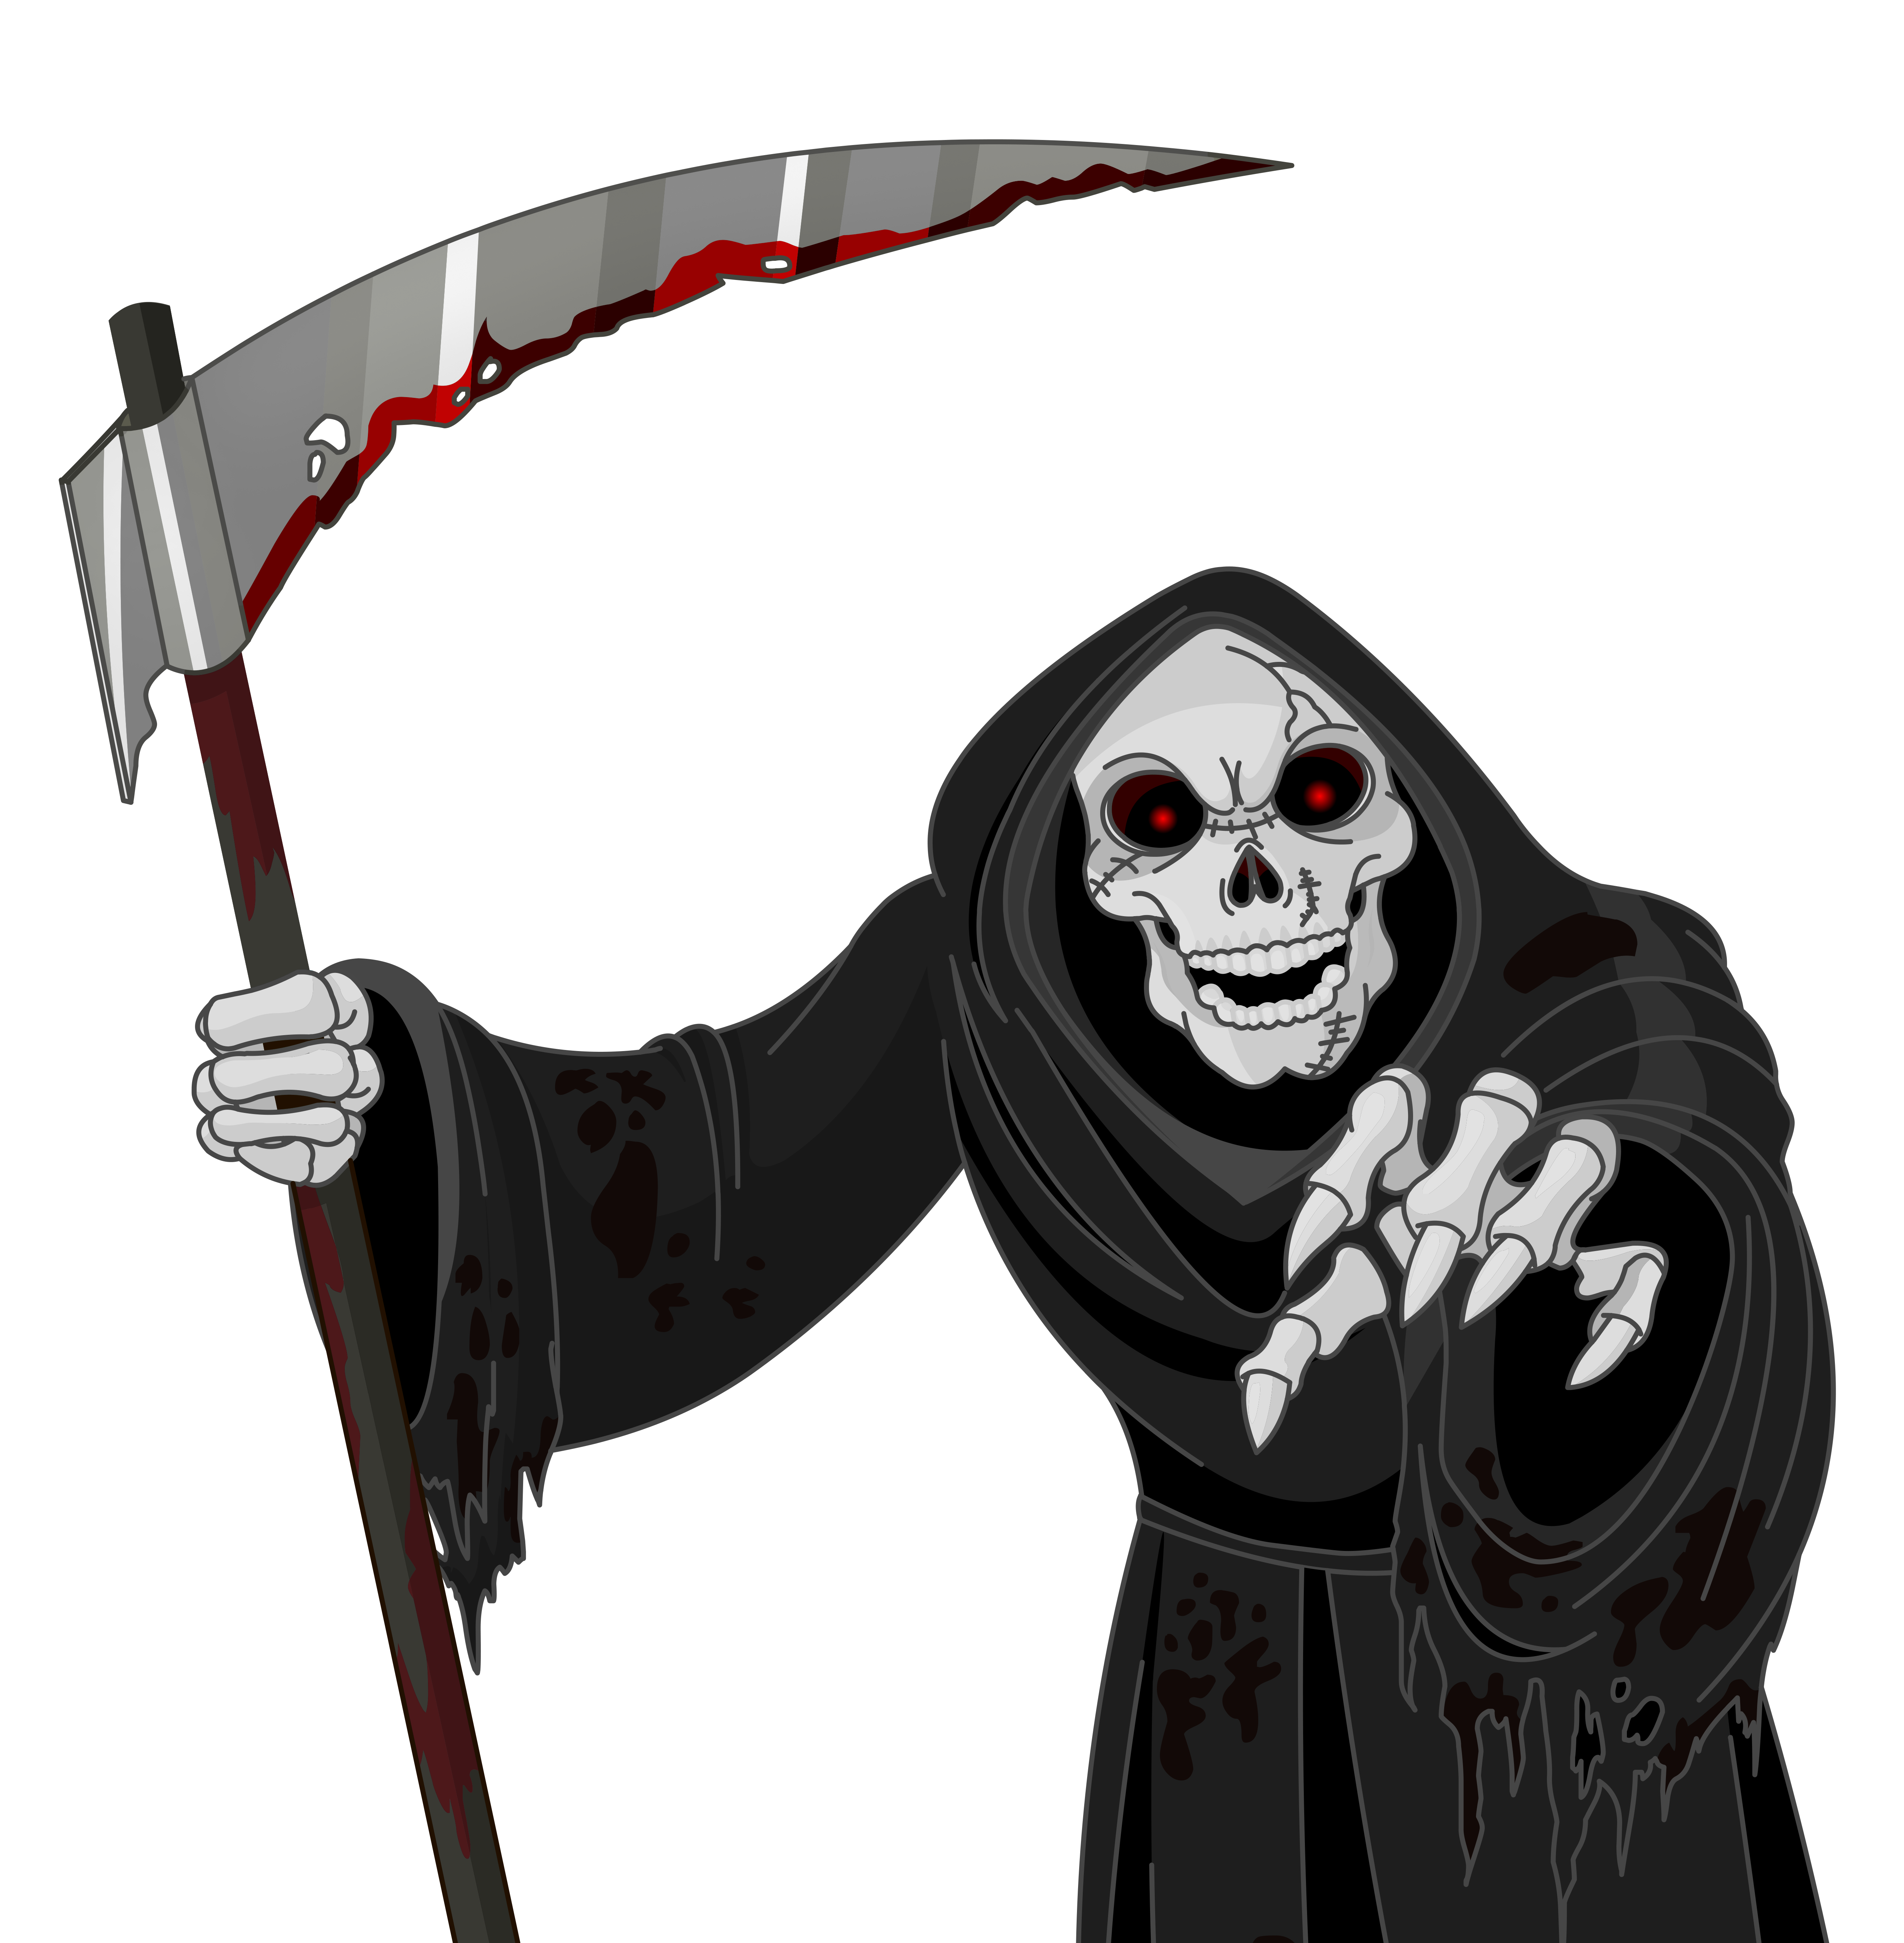 Scary border png. Grim reaper vector clipart